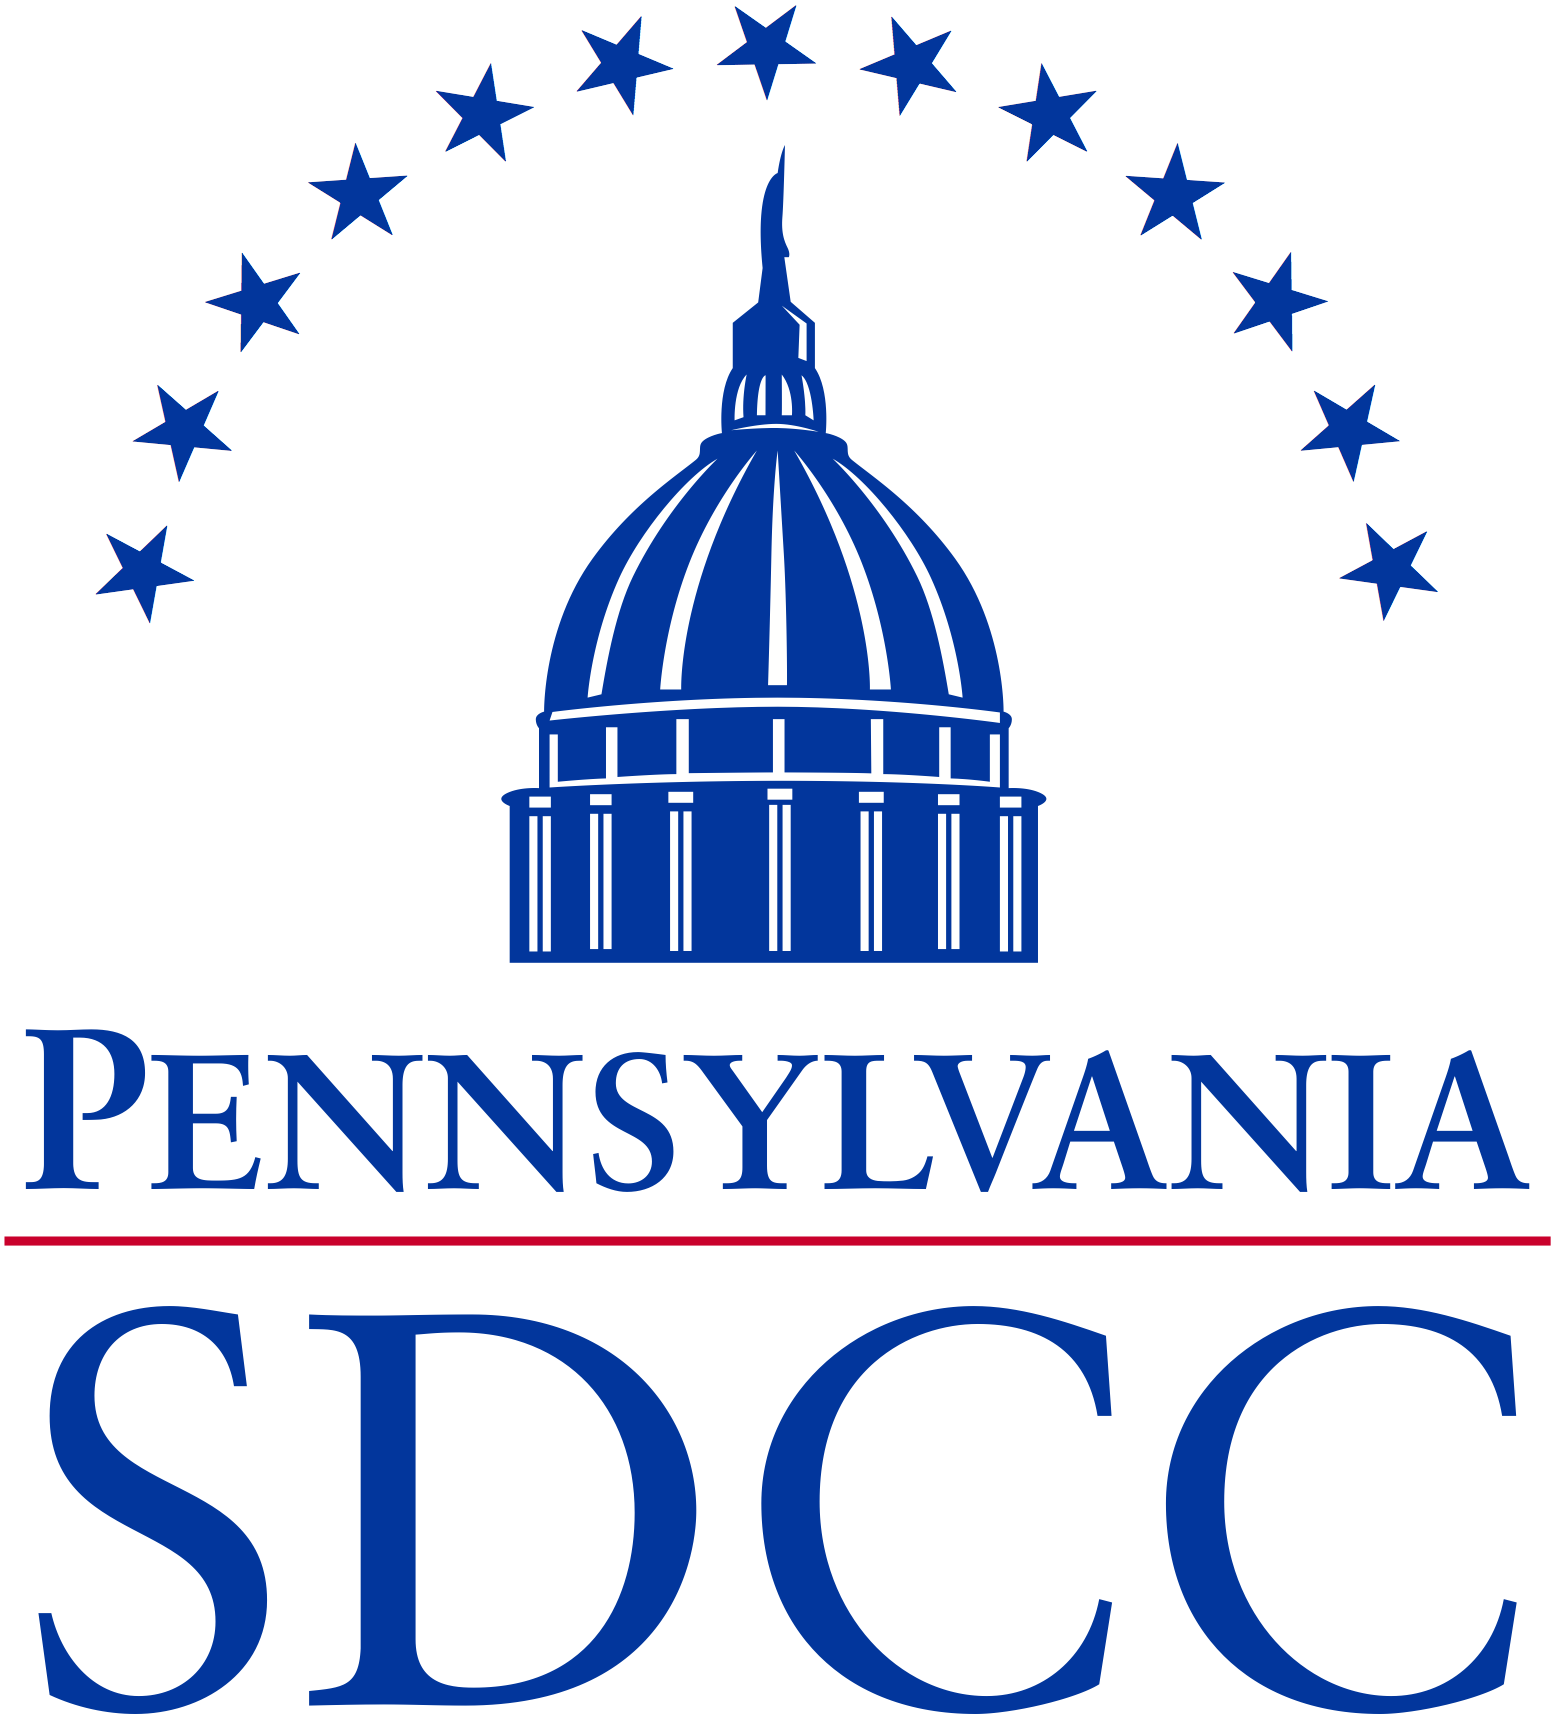 Pennsylvania Senate Democratic Committee